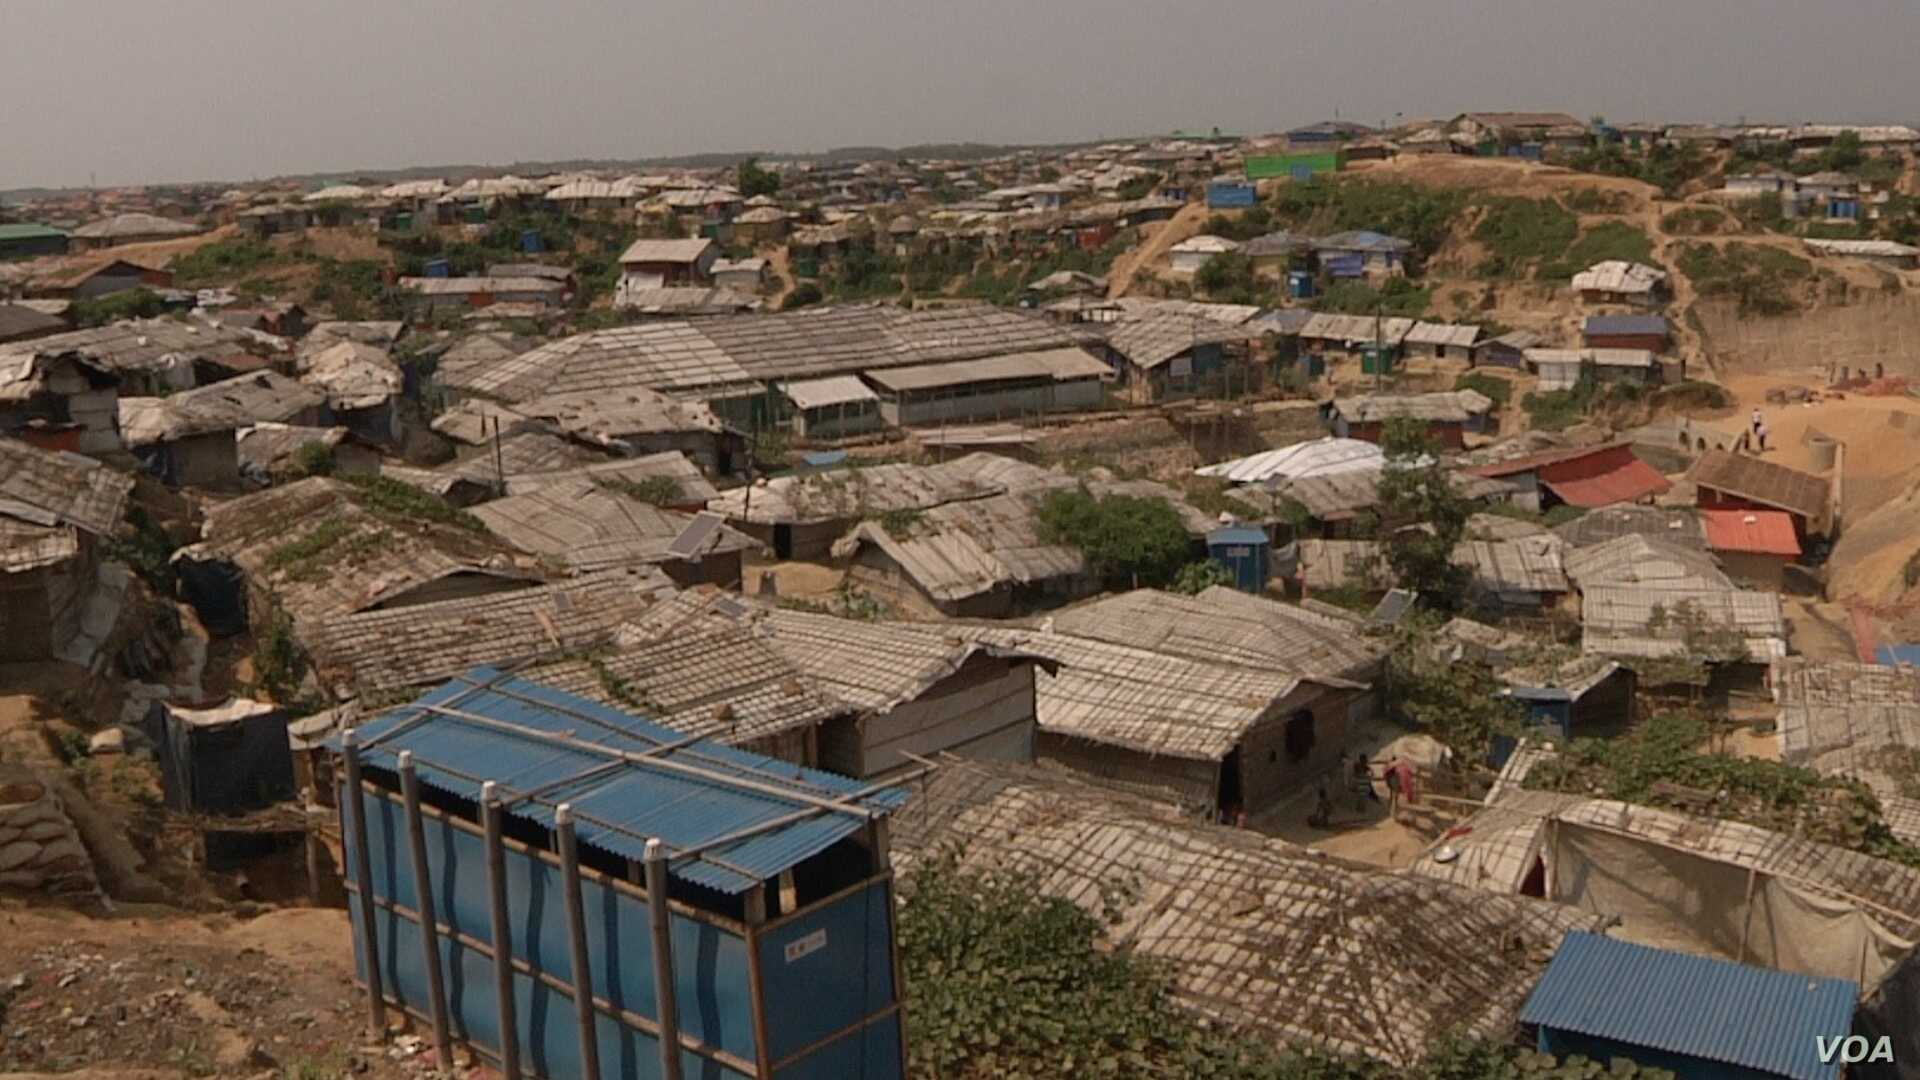 The Rohingya refugee camps are essentially unplanned cities. Shelters and toilets were often set up without appropriate planning. Aid groups are trying to retroactively put in proper drainage and stabilize slopes.